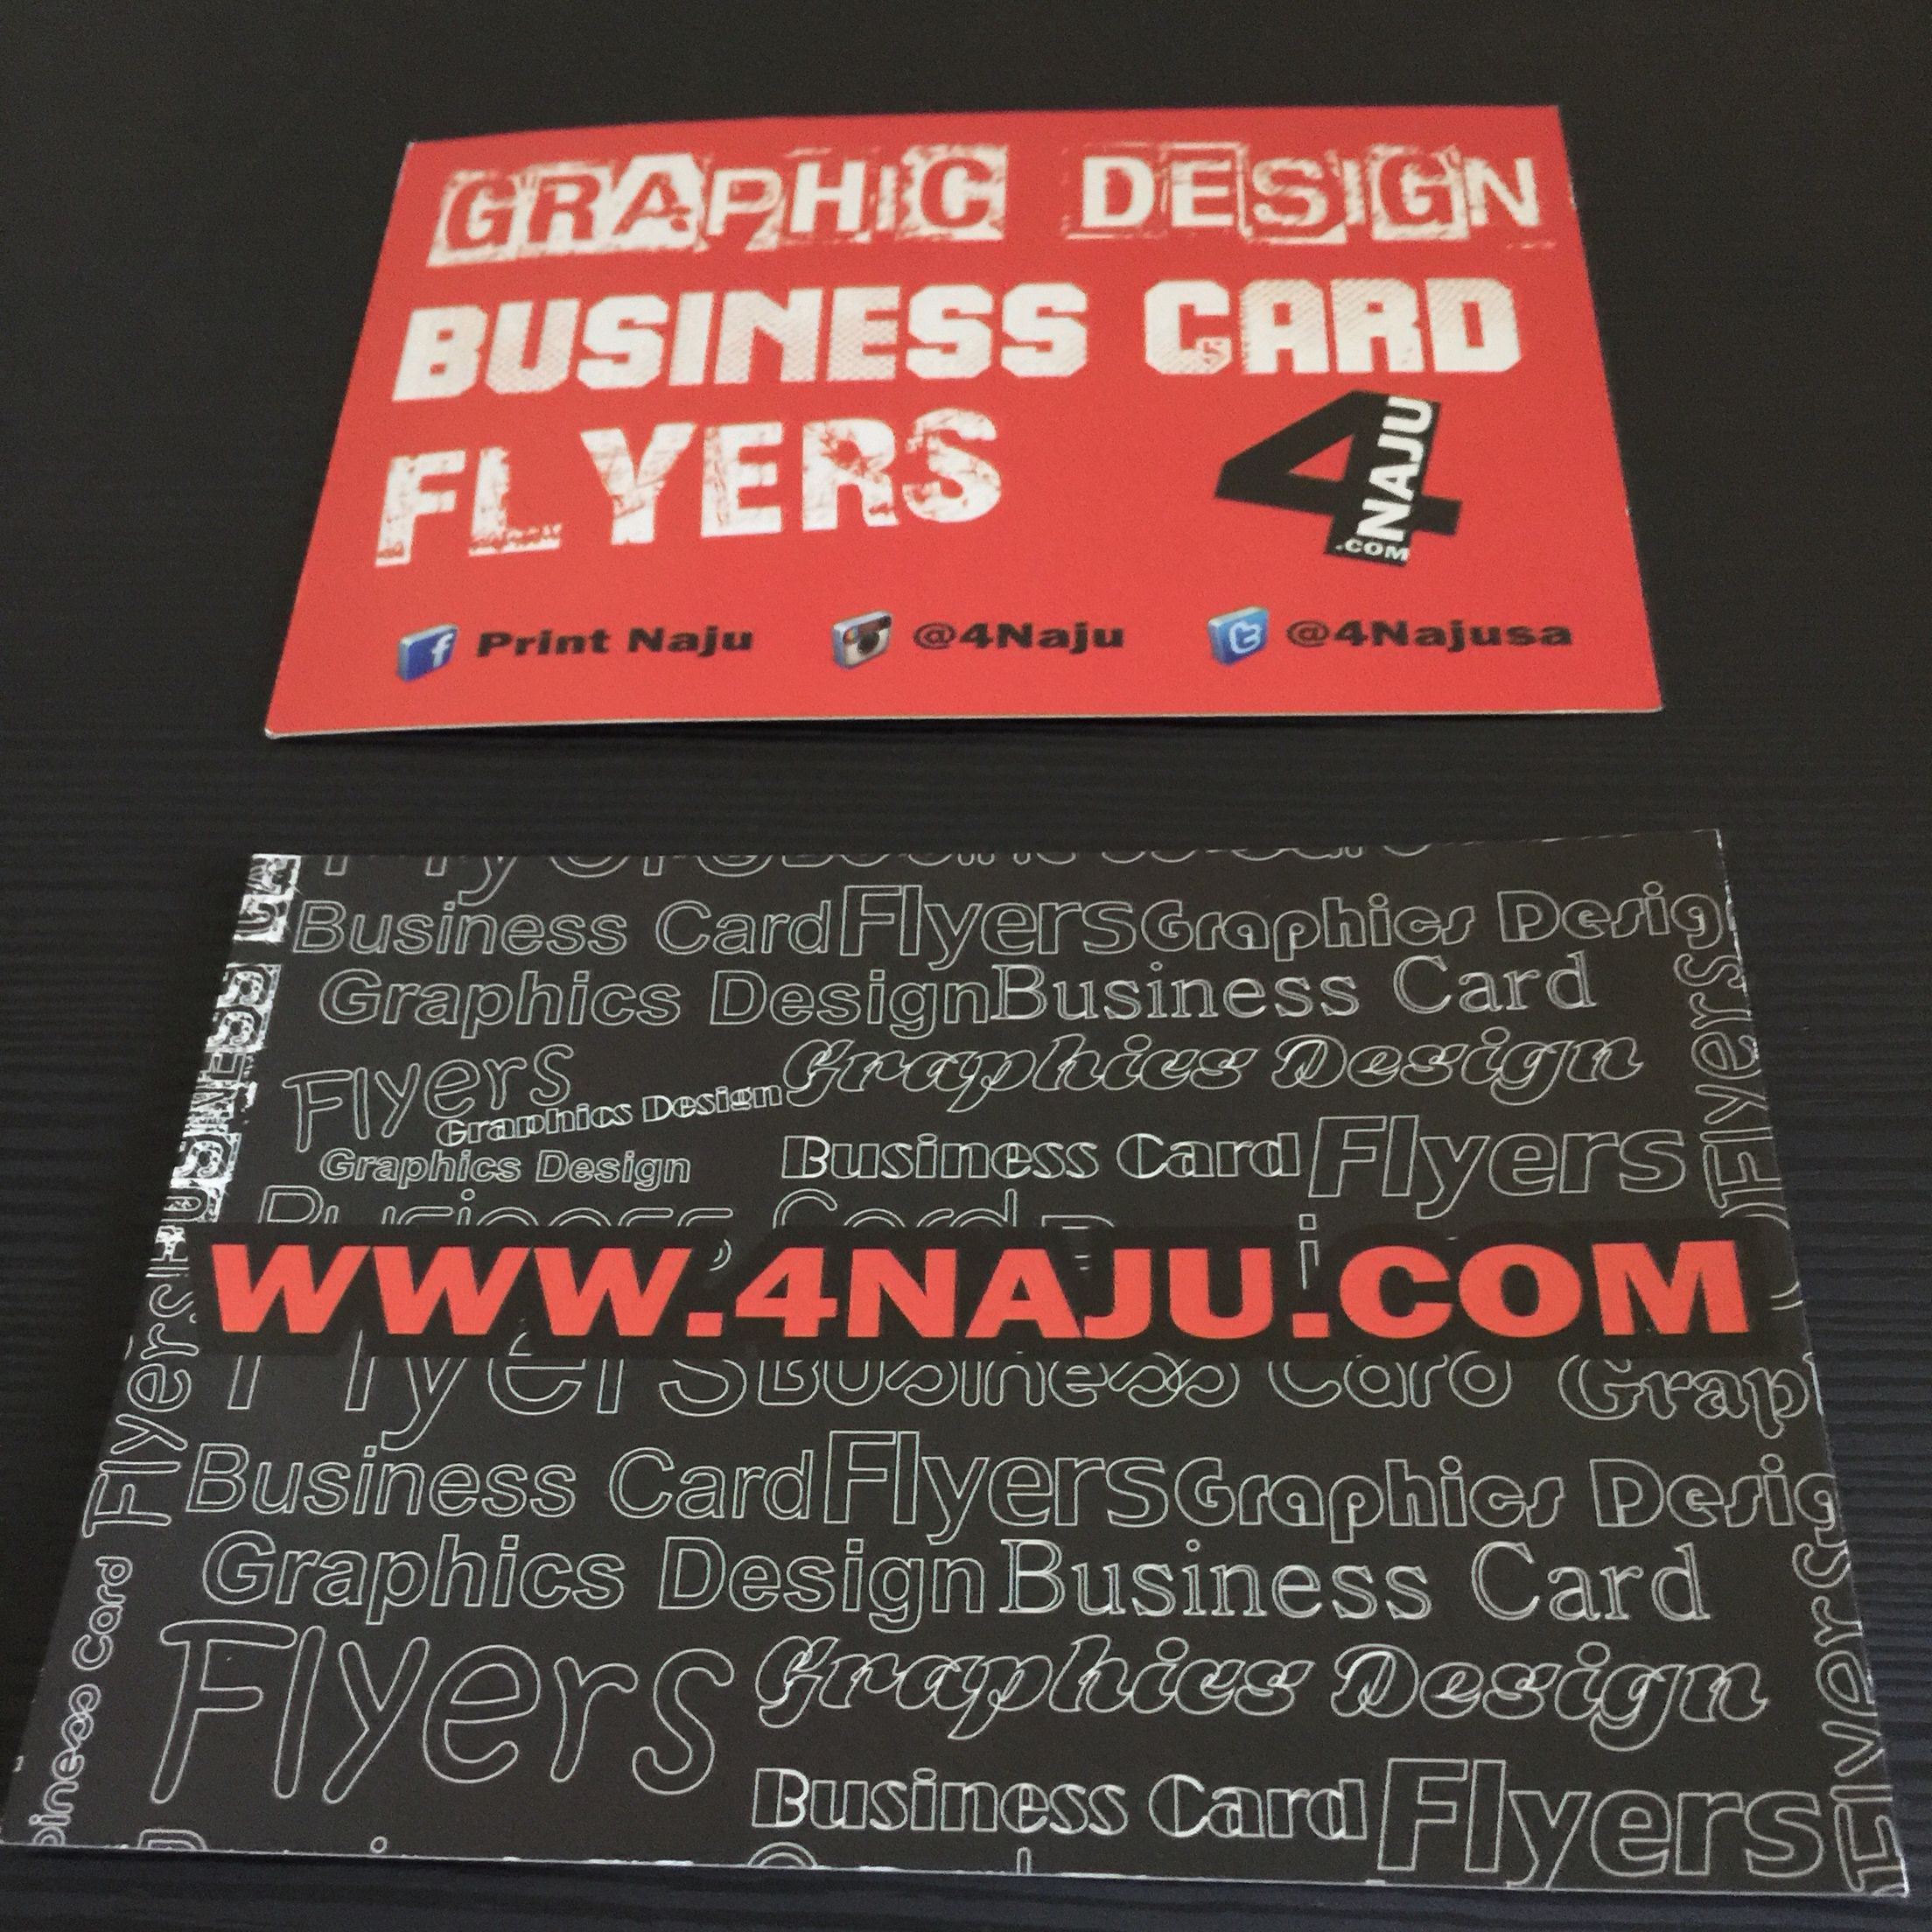 1000 Flyers Size 6x4 Full Color With Uv 100 Graphic Design Business Card Flyer Printing Graphic Design Business